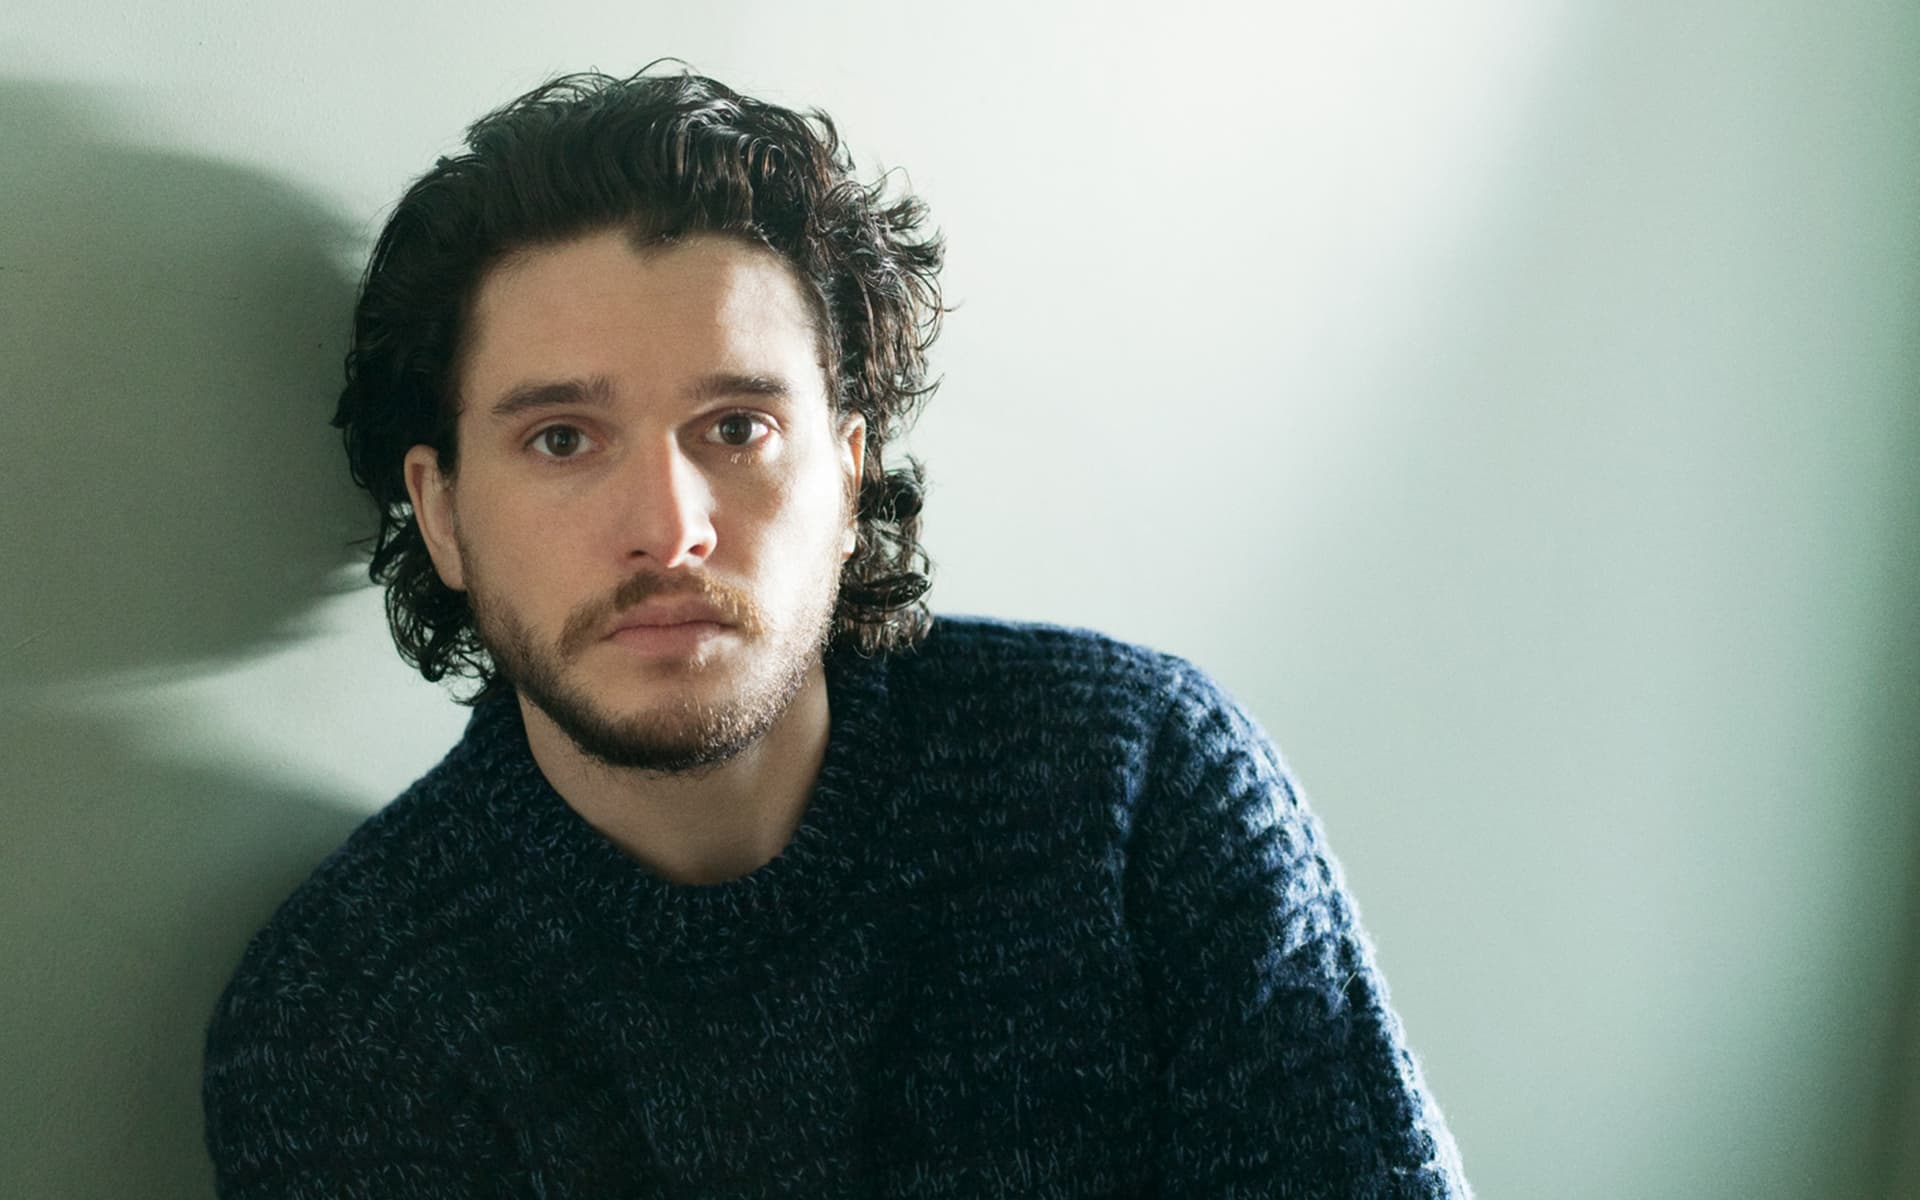 Kit Harington typical High Quality image